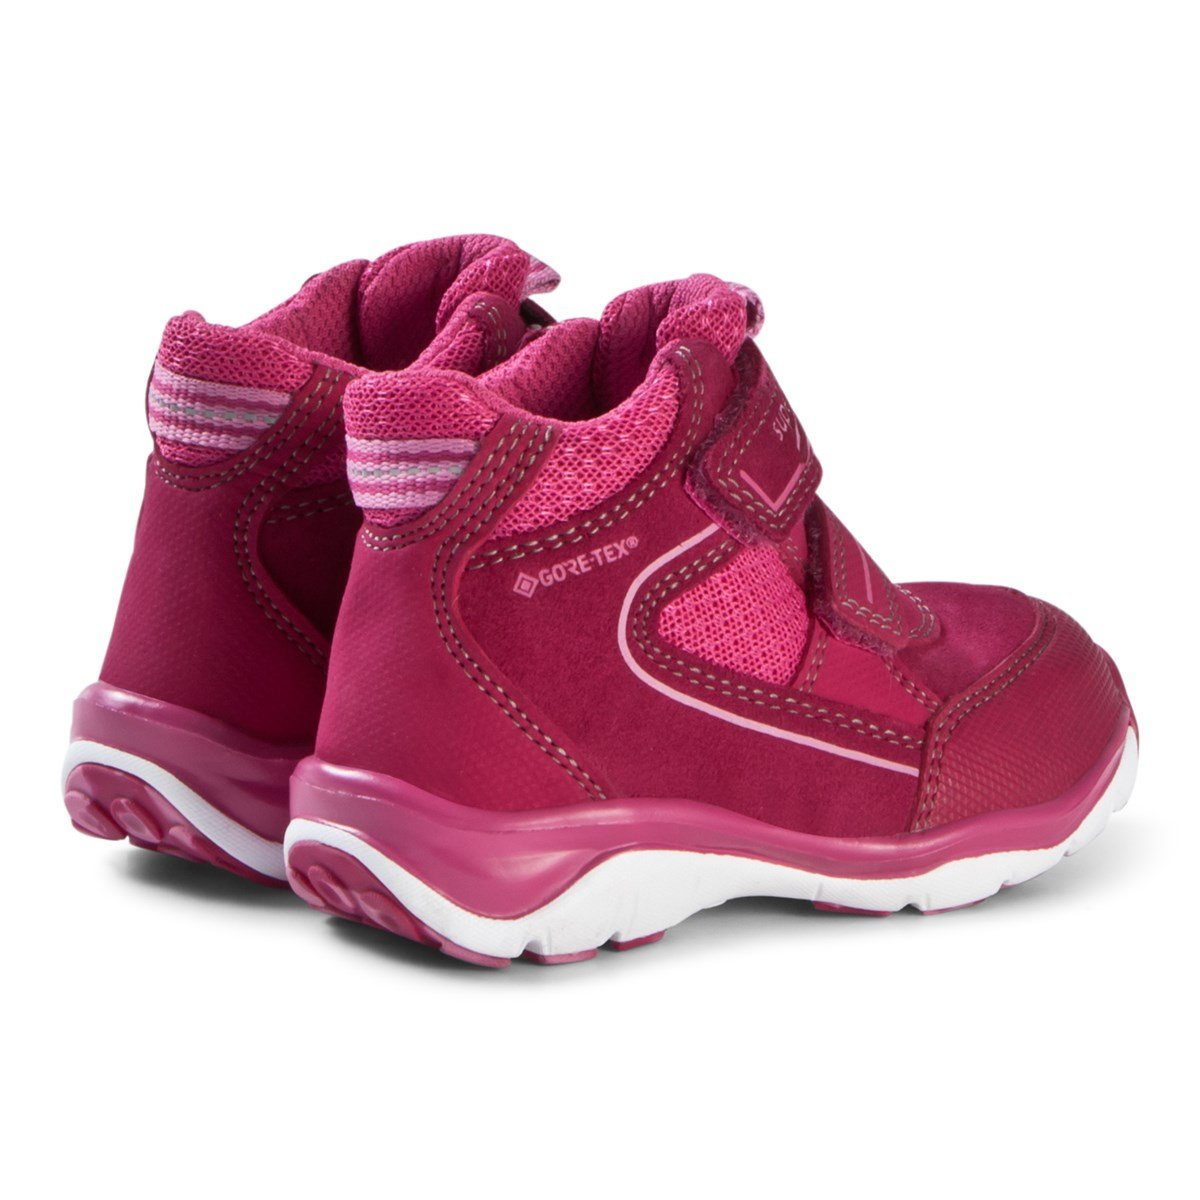 8ab2399a790 Superfit - Sport 5 Gore-Tex® Shoes Red and Pink - Babyshop.com